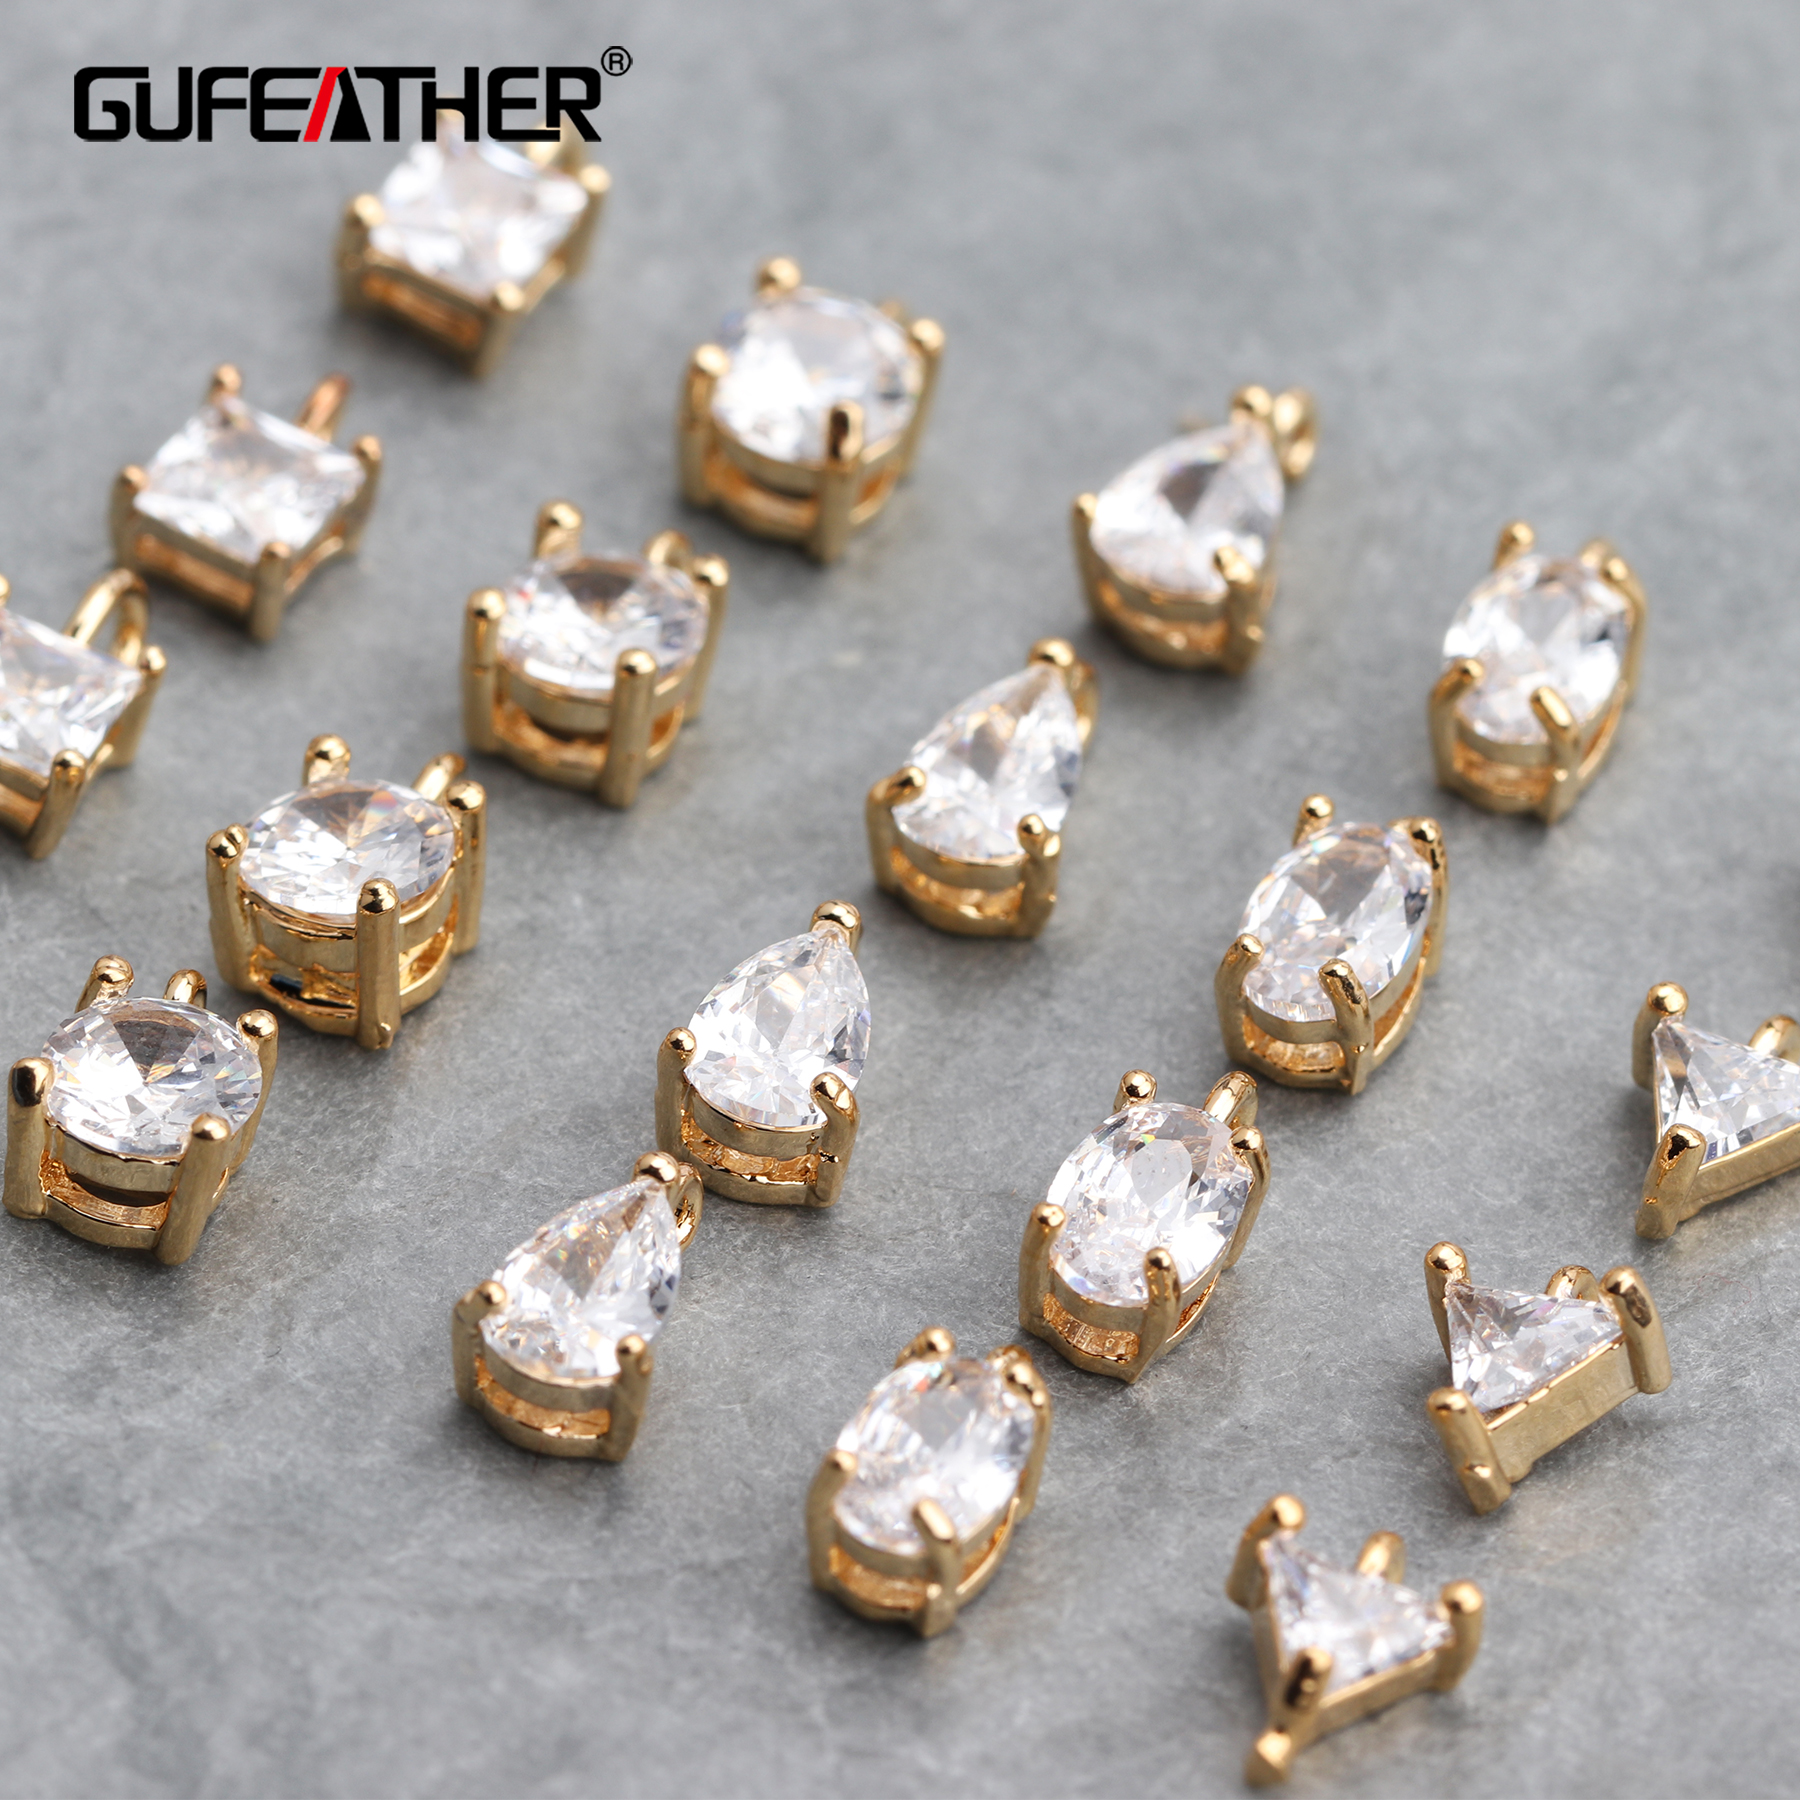 GUFEATHER M618,jewelry Accessories,18k Gold Plated,jump Ring,hand Made,jewelry Making,diy Zircon Pendant,diy Earring,20pcs/lot